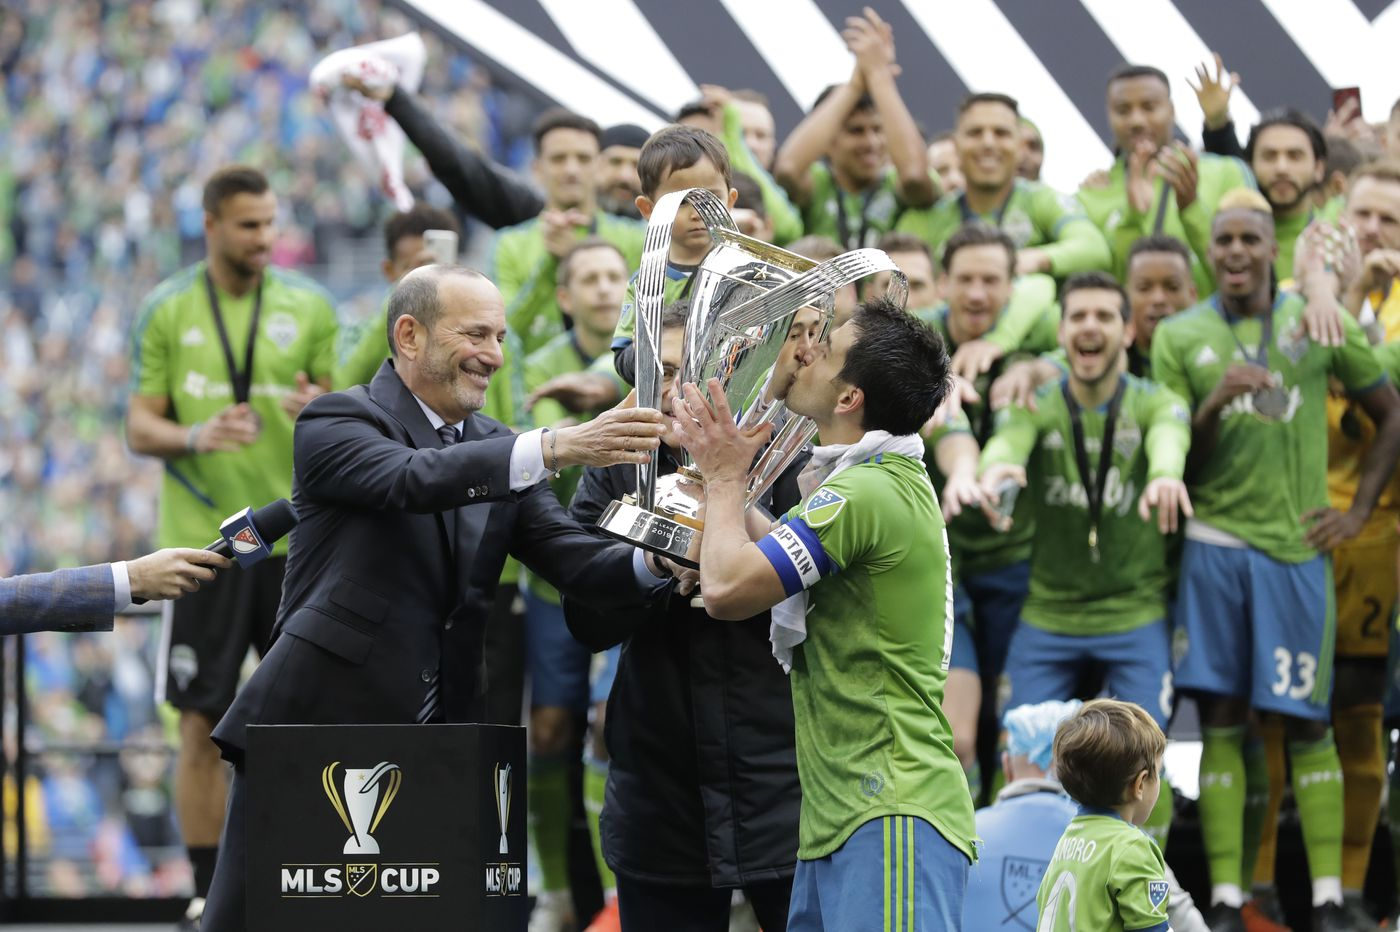 Seattle Sounders claim 2nd MLS title in 4 years, beating Toronto FC 3-1 in title game